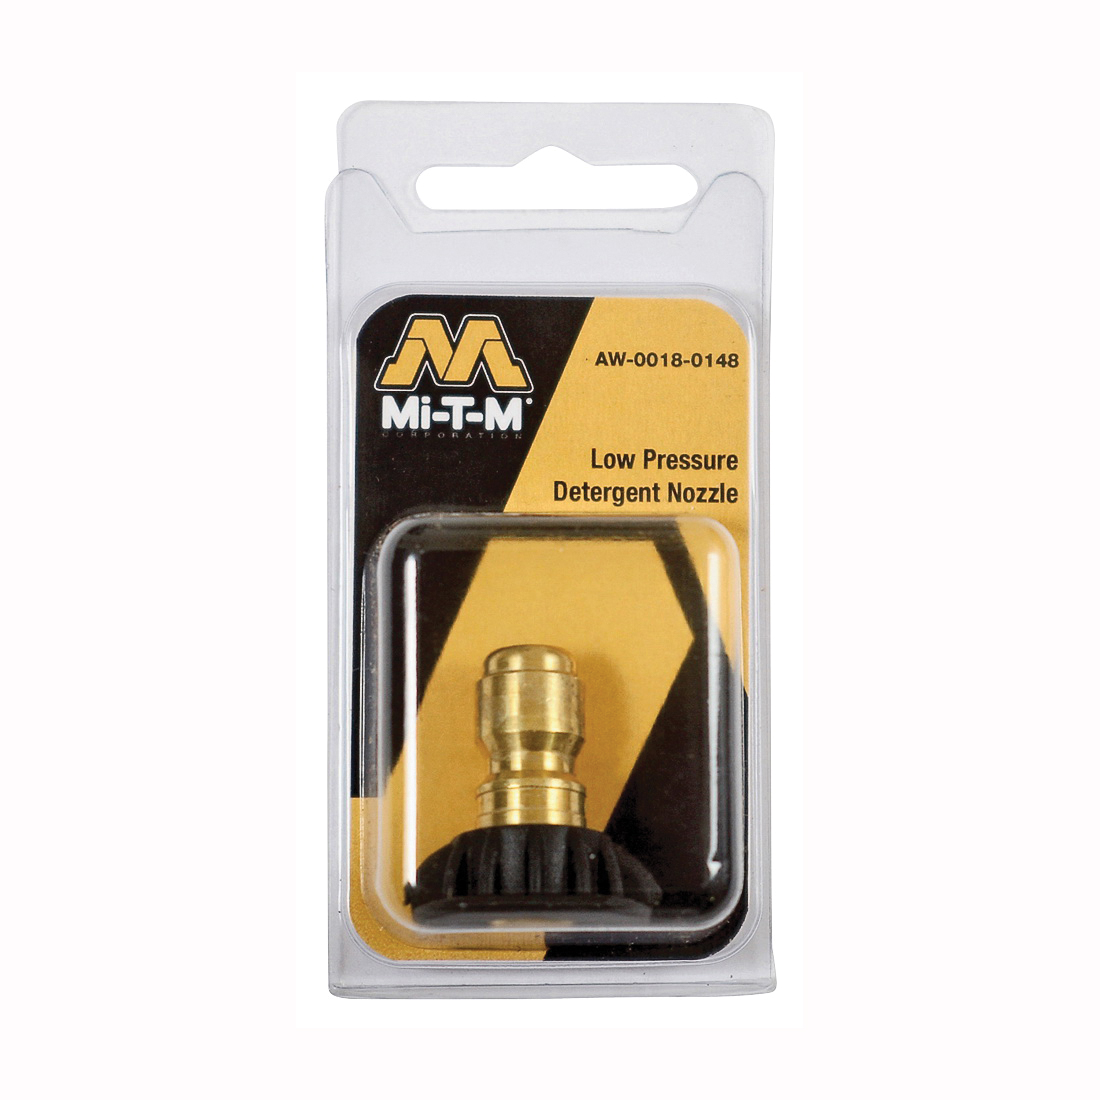 Picture of Mi-T-M AW-0018-0148 Detergent Nozzle, 65 deg Angle, For: Detergent Injector